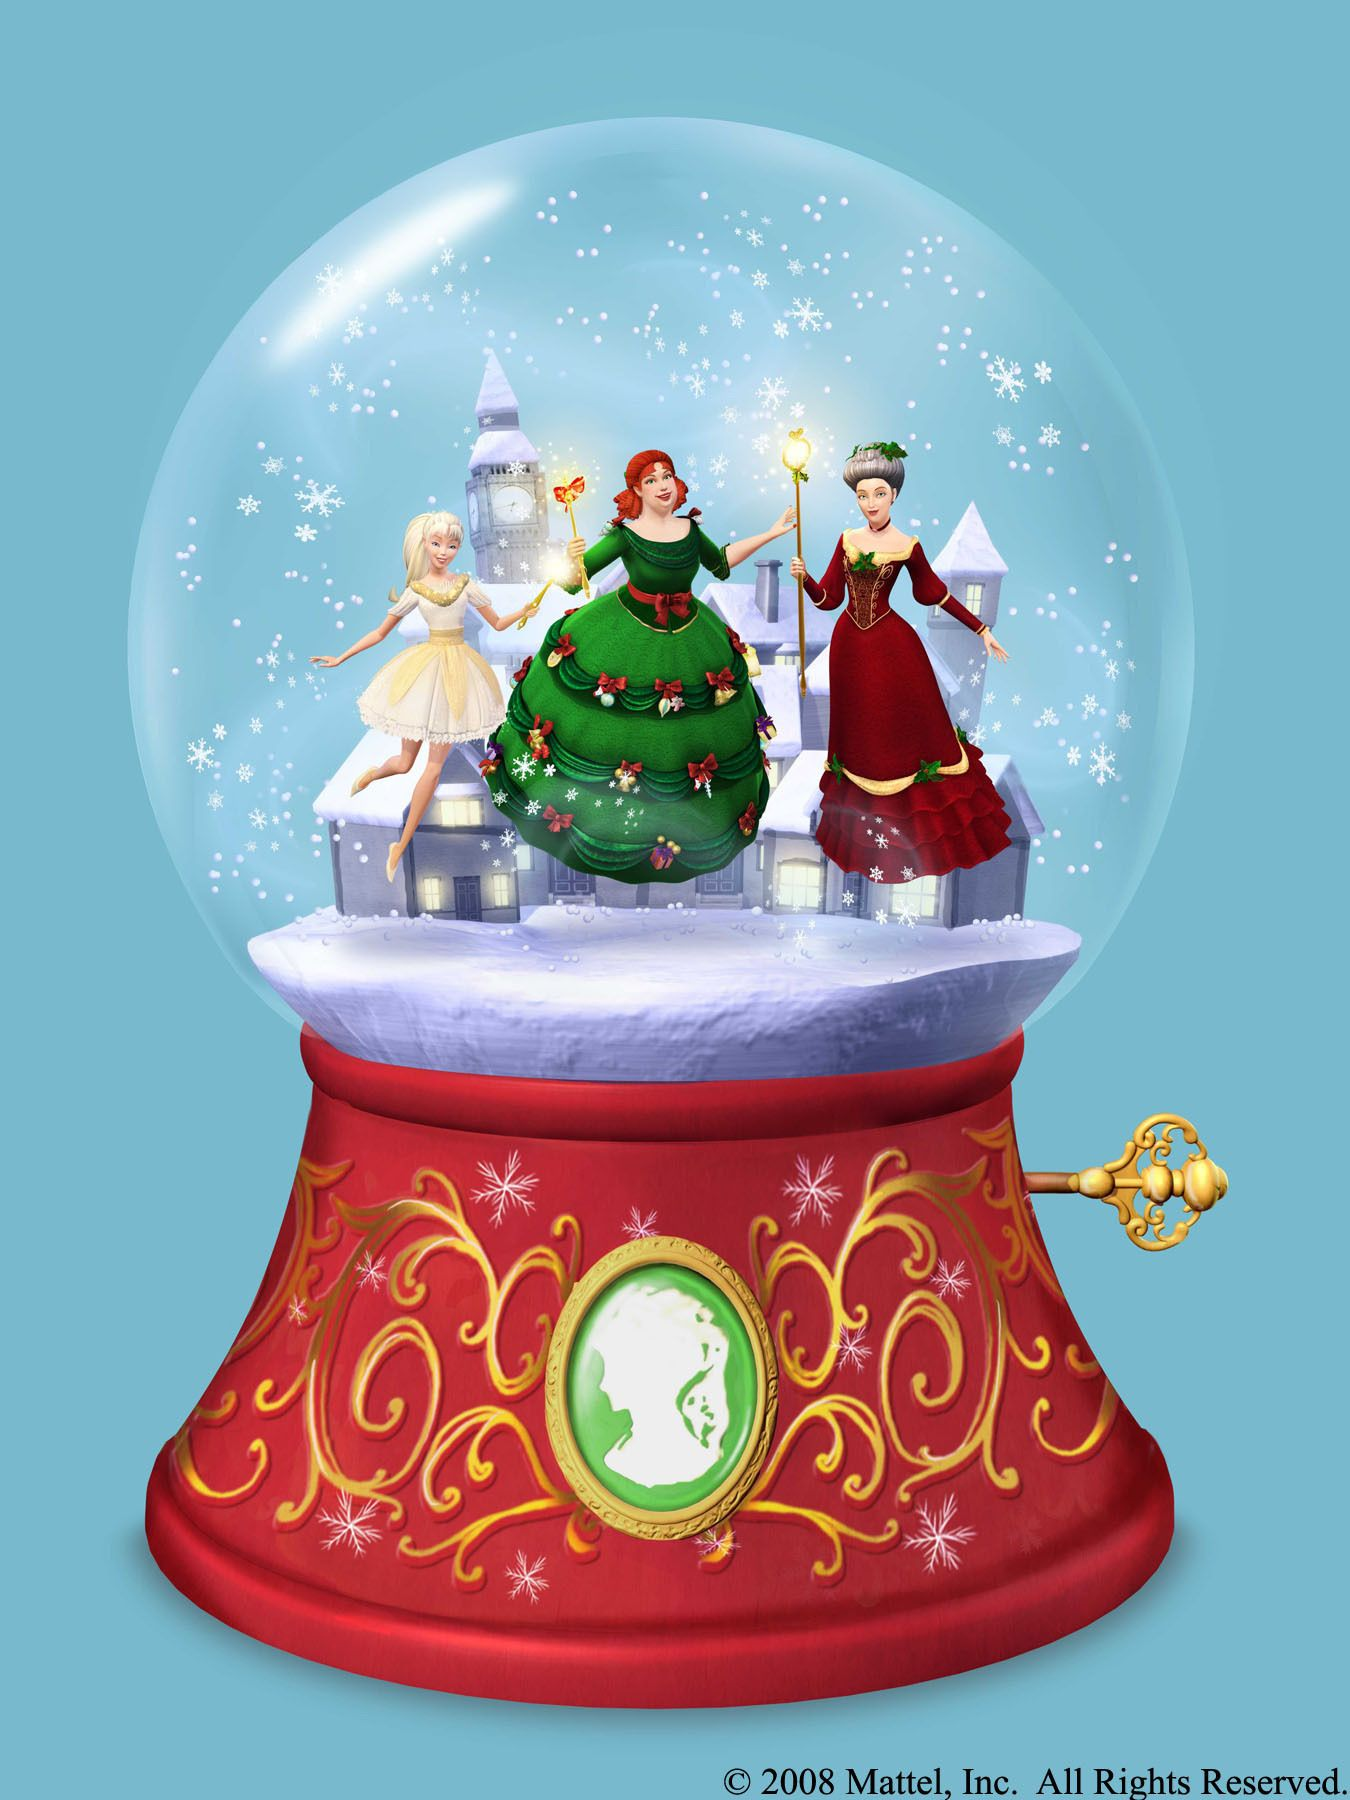 Christmas Snow Globe with Three Spirits of Christmas Past